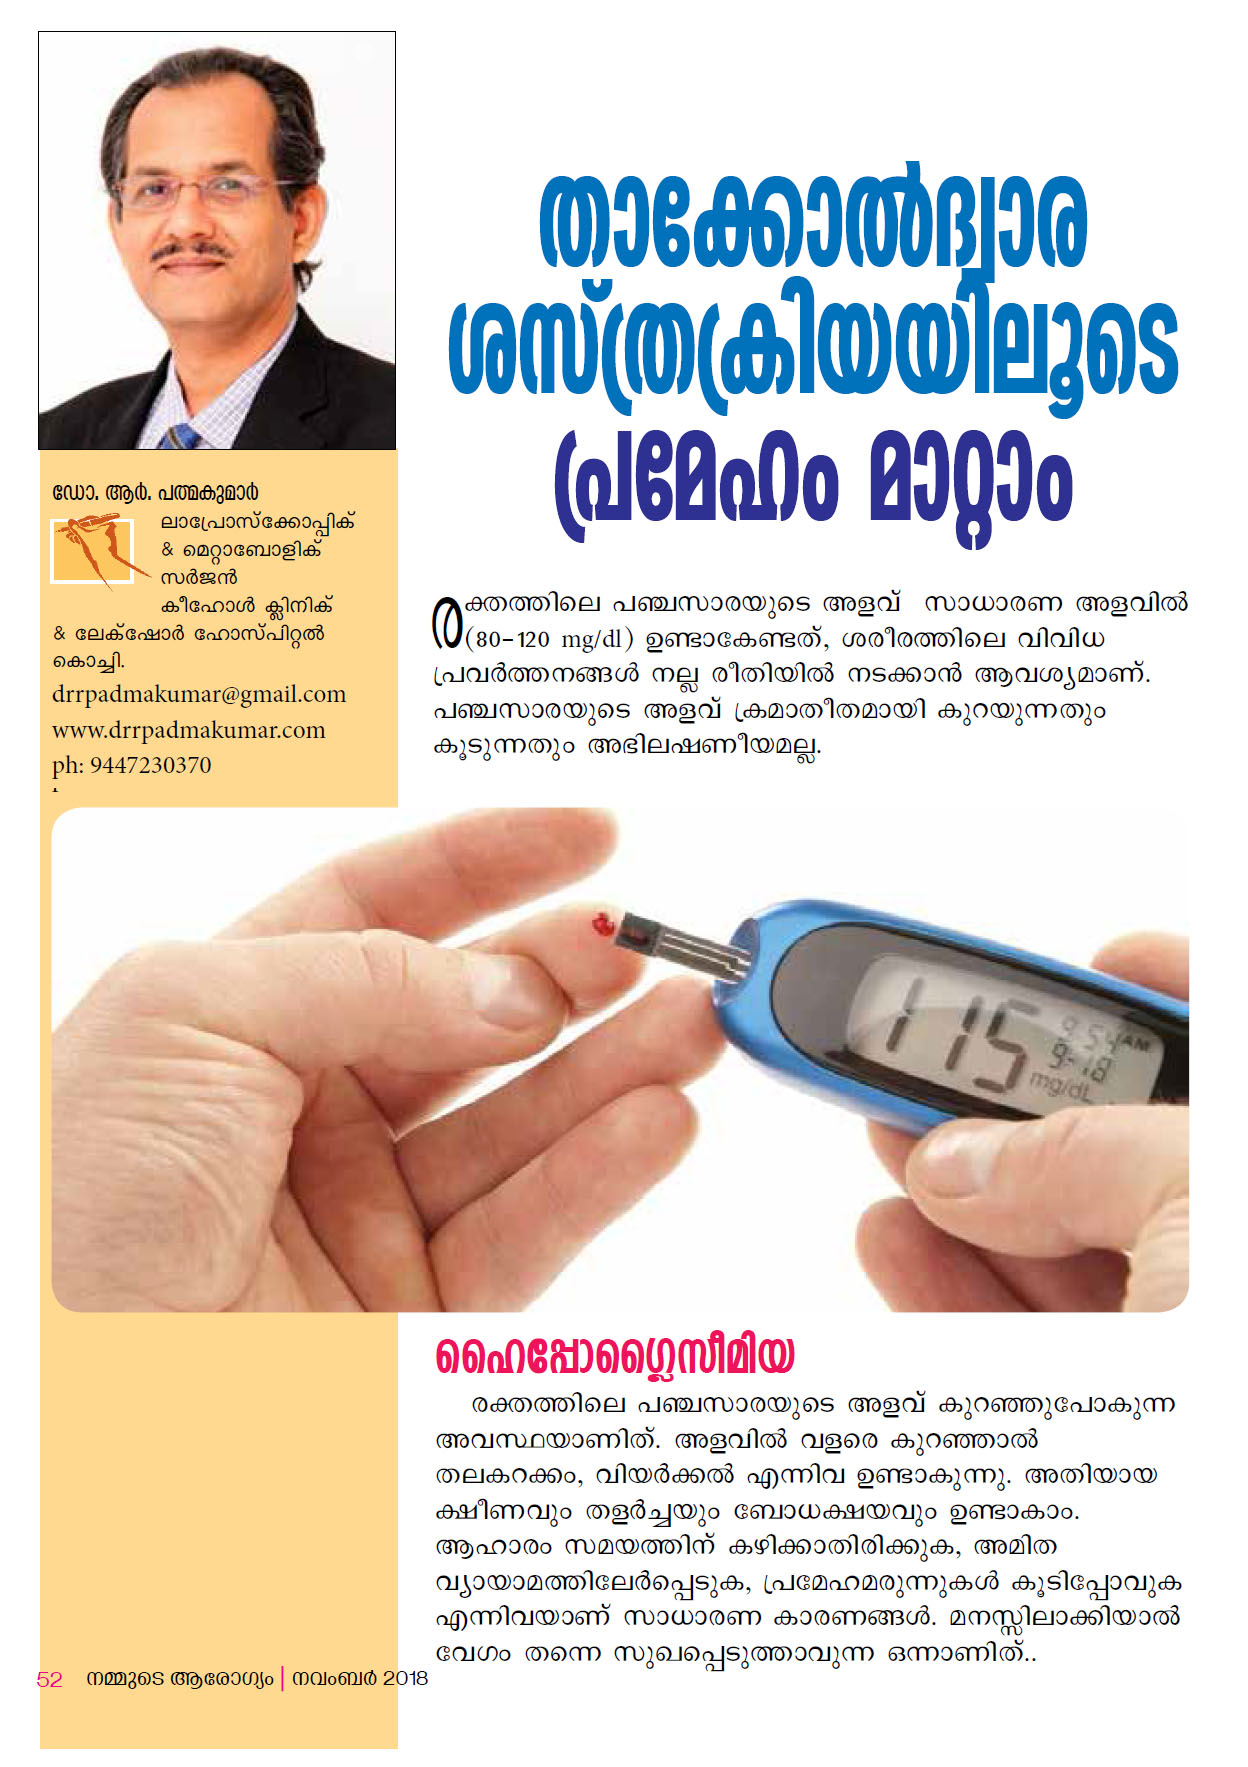 Keyhole Surgery for Diabetes by Dr R Padmakumar Page 1